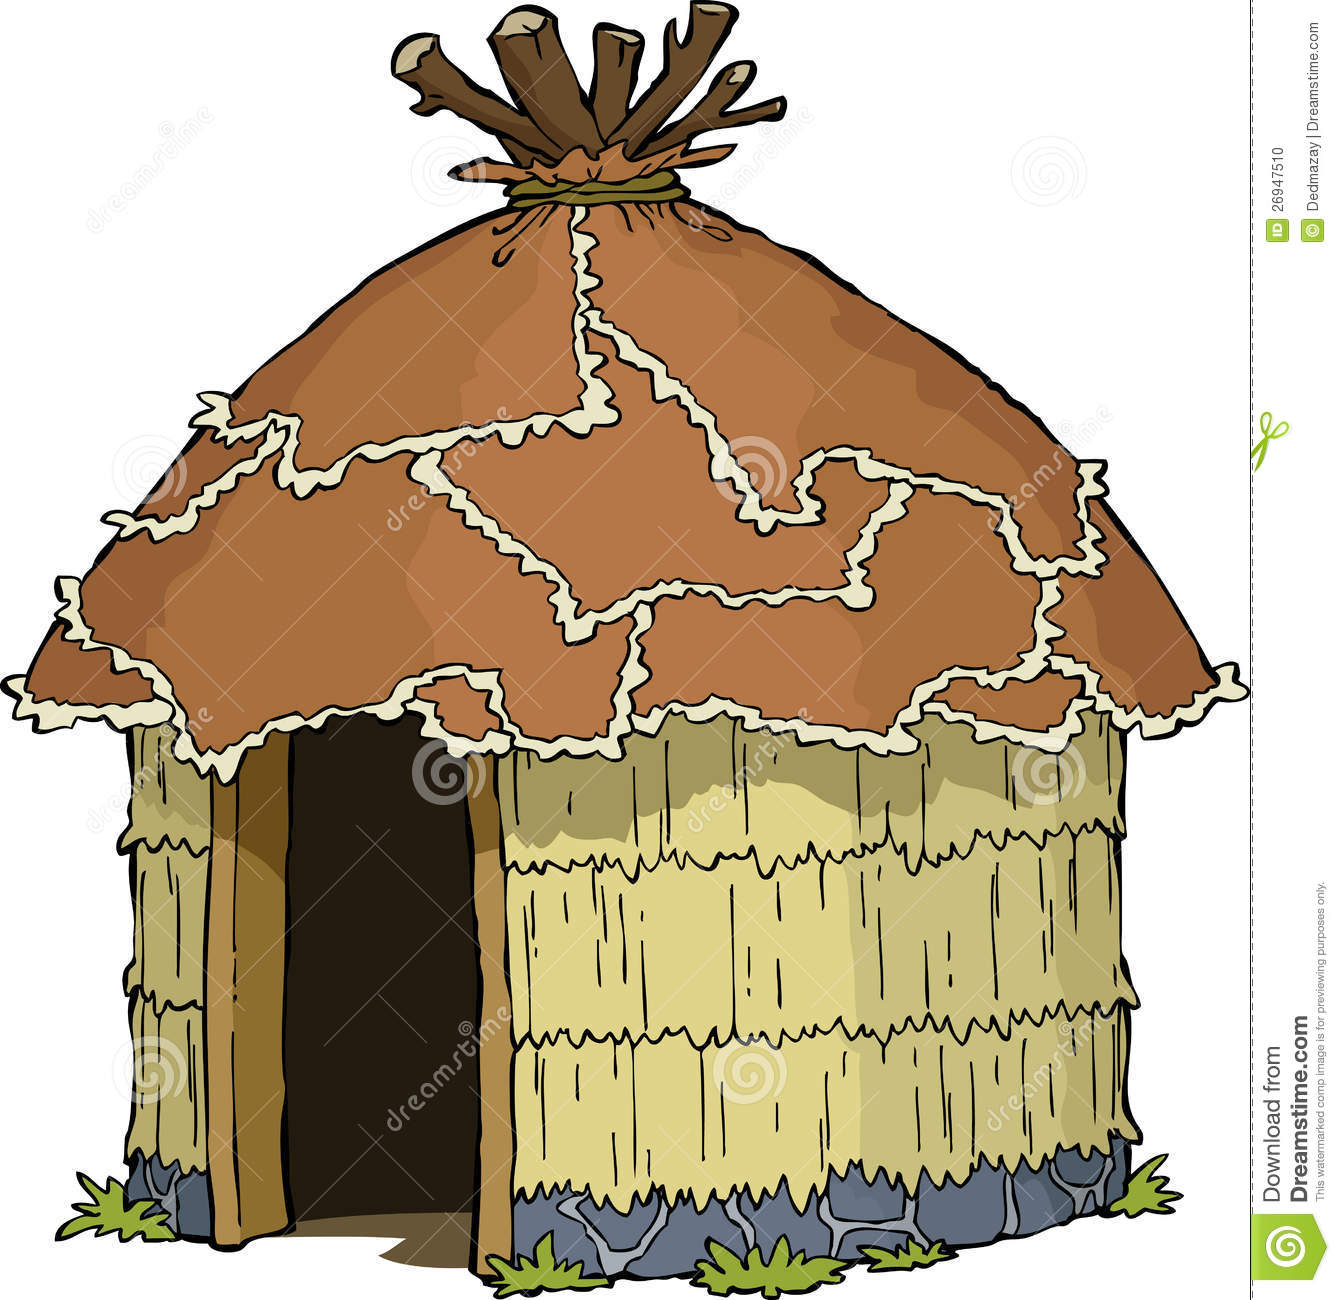 how to build a small food hut